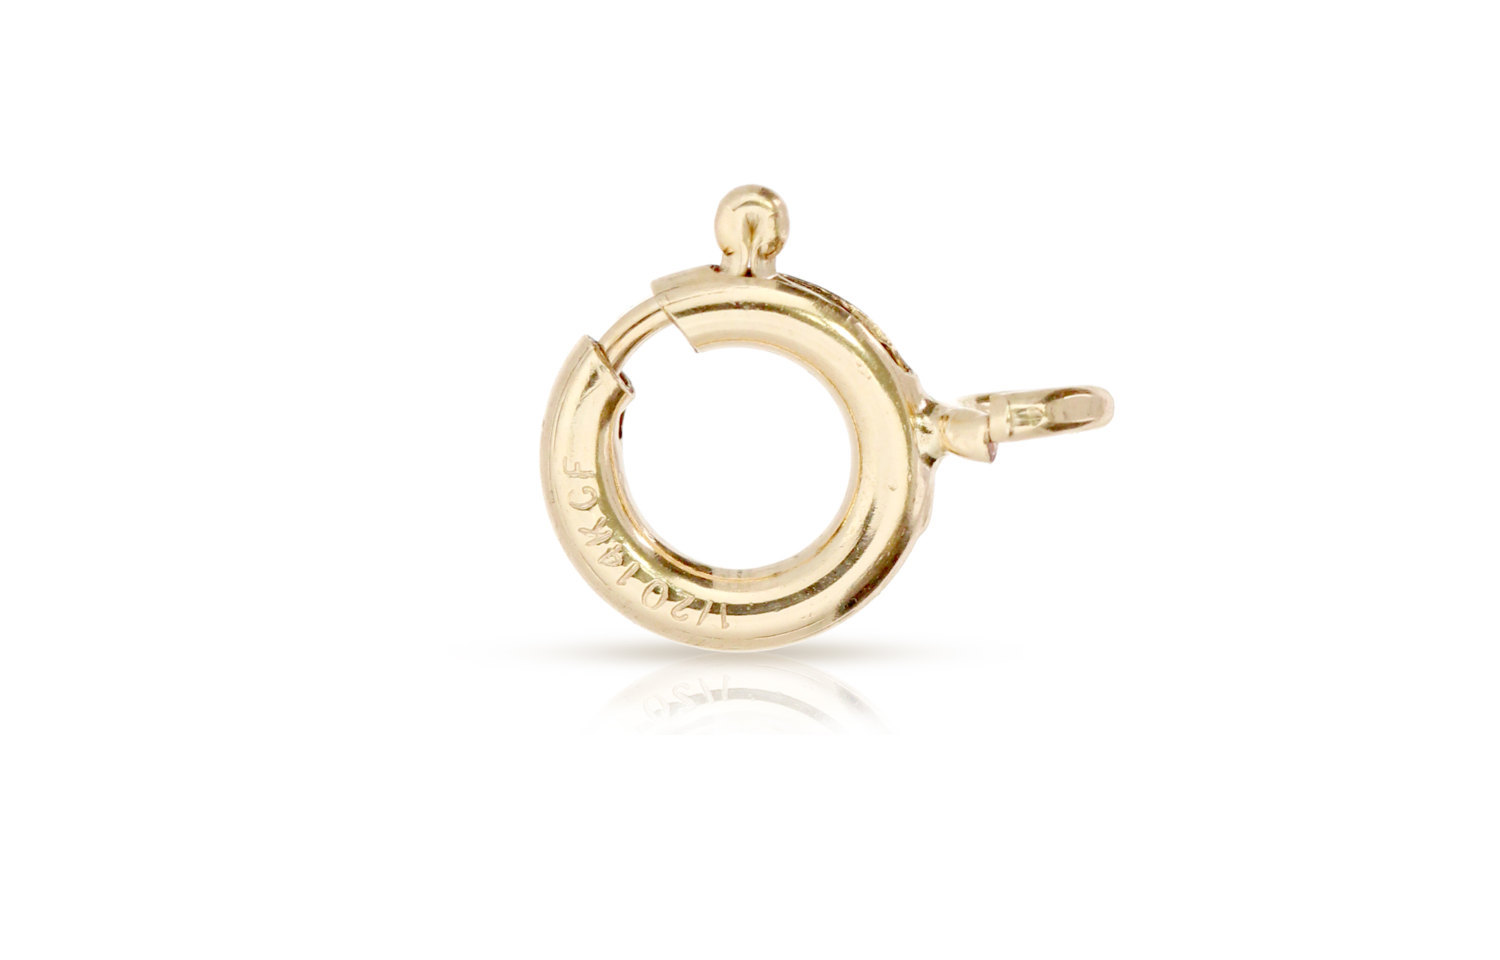 Primary image for Claps, Spring Ring With Open Ring, 14Kt Gold Filled, 5mm, Pkg Of 20pcs (3012)/1